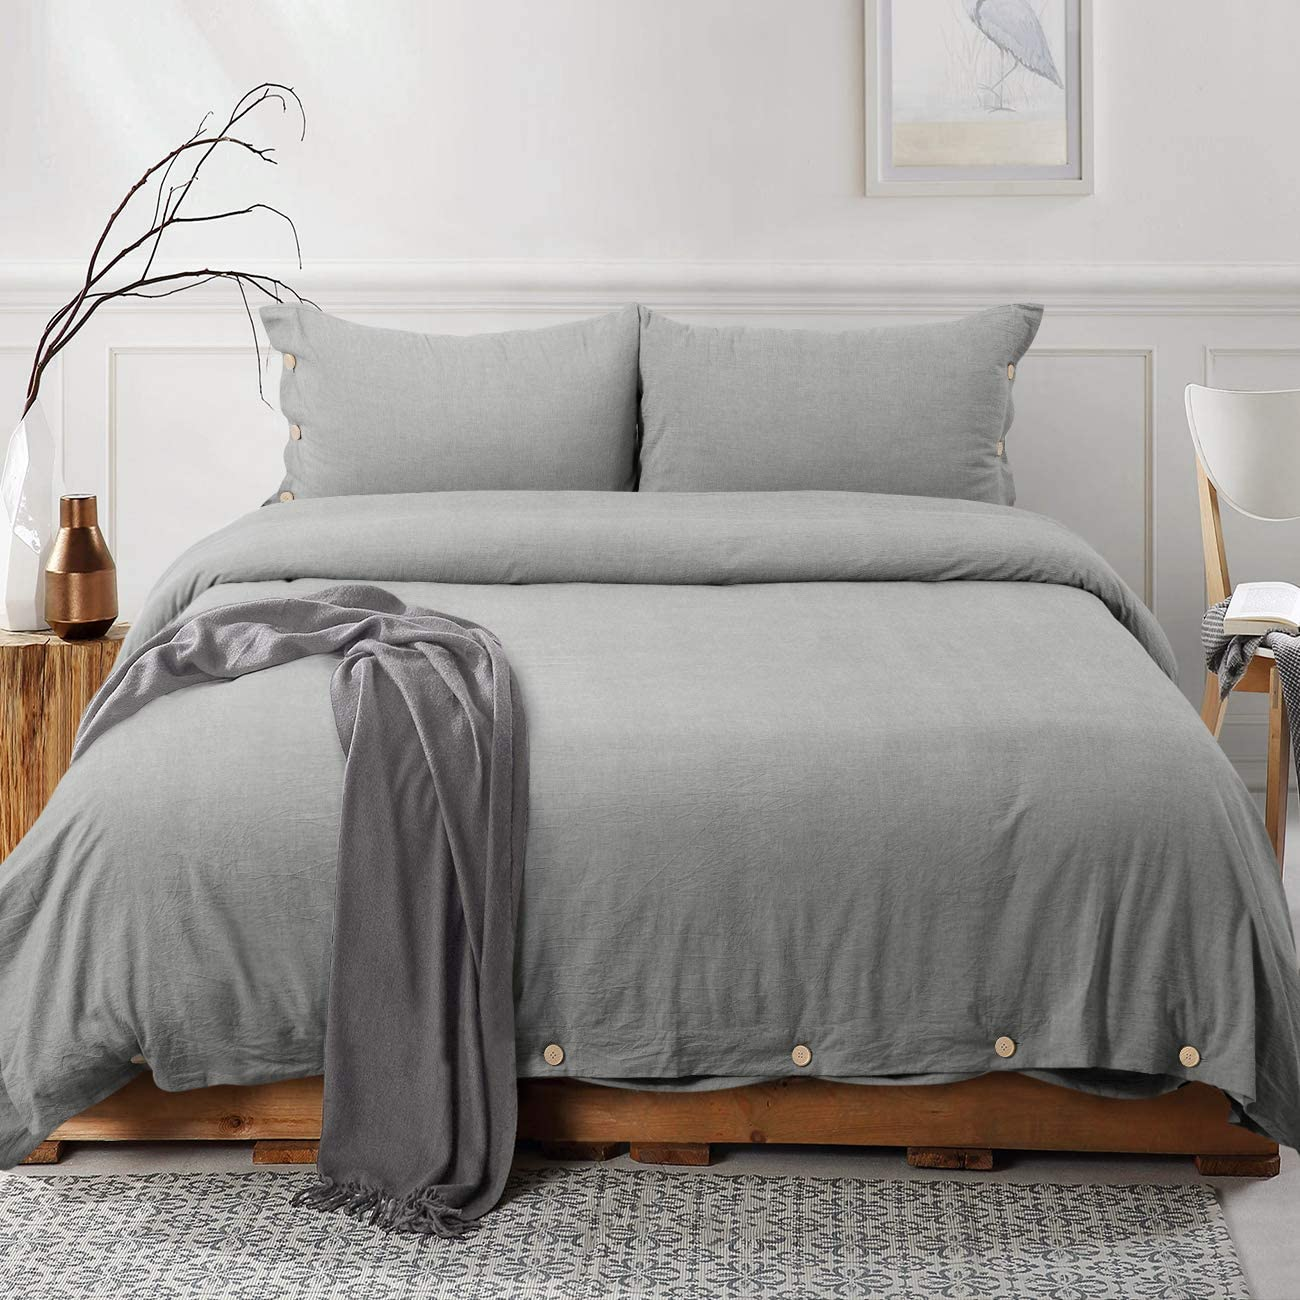 viewstar Grey 100% Washed Cotton Duvet Cover Set,3 Pieces Luxury Soft Bedding Set with Buttons Closure,Breathable,Hypoallergenic,Solid Gray Color Duvet Cover King Size(No Comforter)